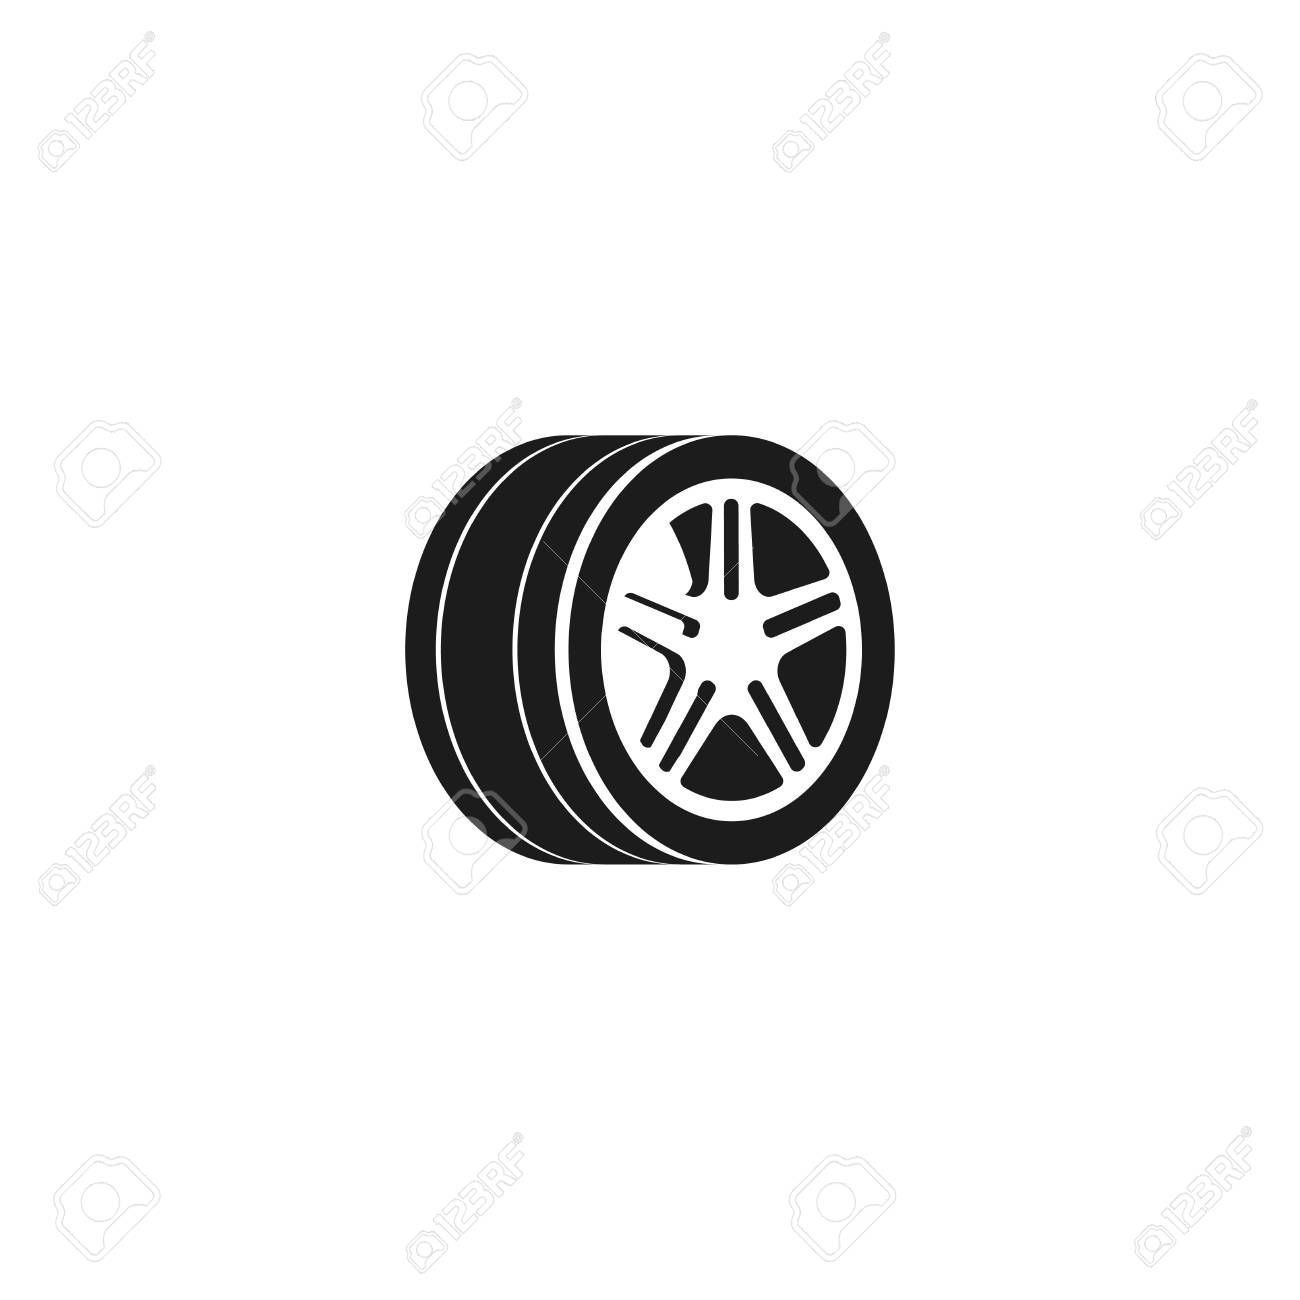 bb8adc4f59f3db Vector - Wheel car vector icon isolated on white background, tire icon,  black and white tire element, simple flat car wheel with tire and disk  symbol design